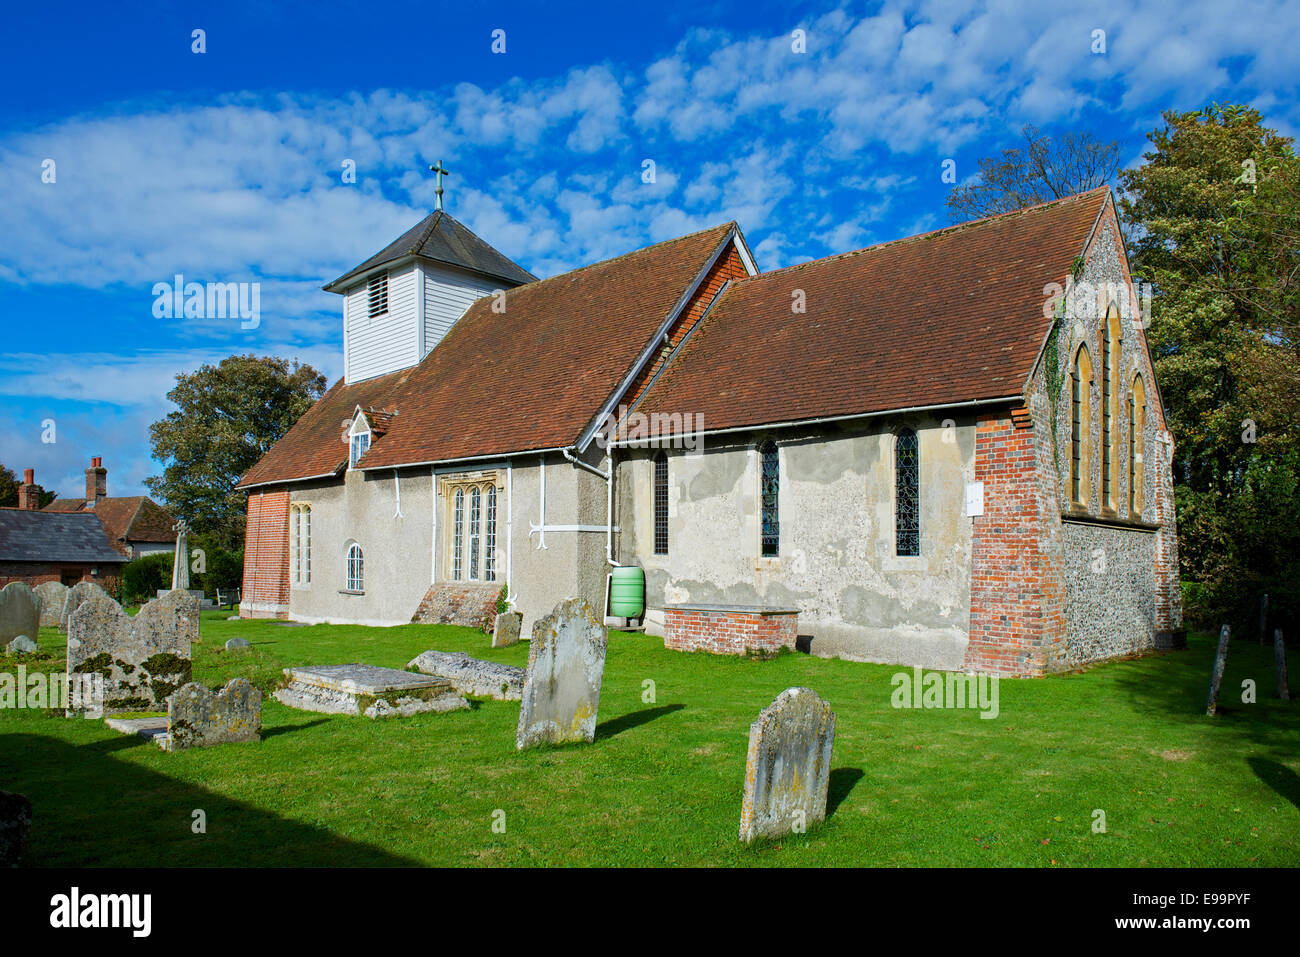 All Saints Church, in the village of Dummer, Hampshire, England UK - Stock Image